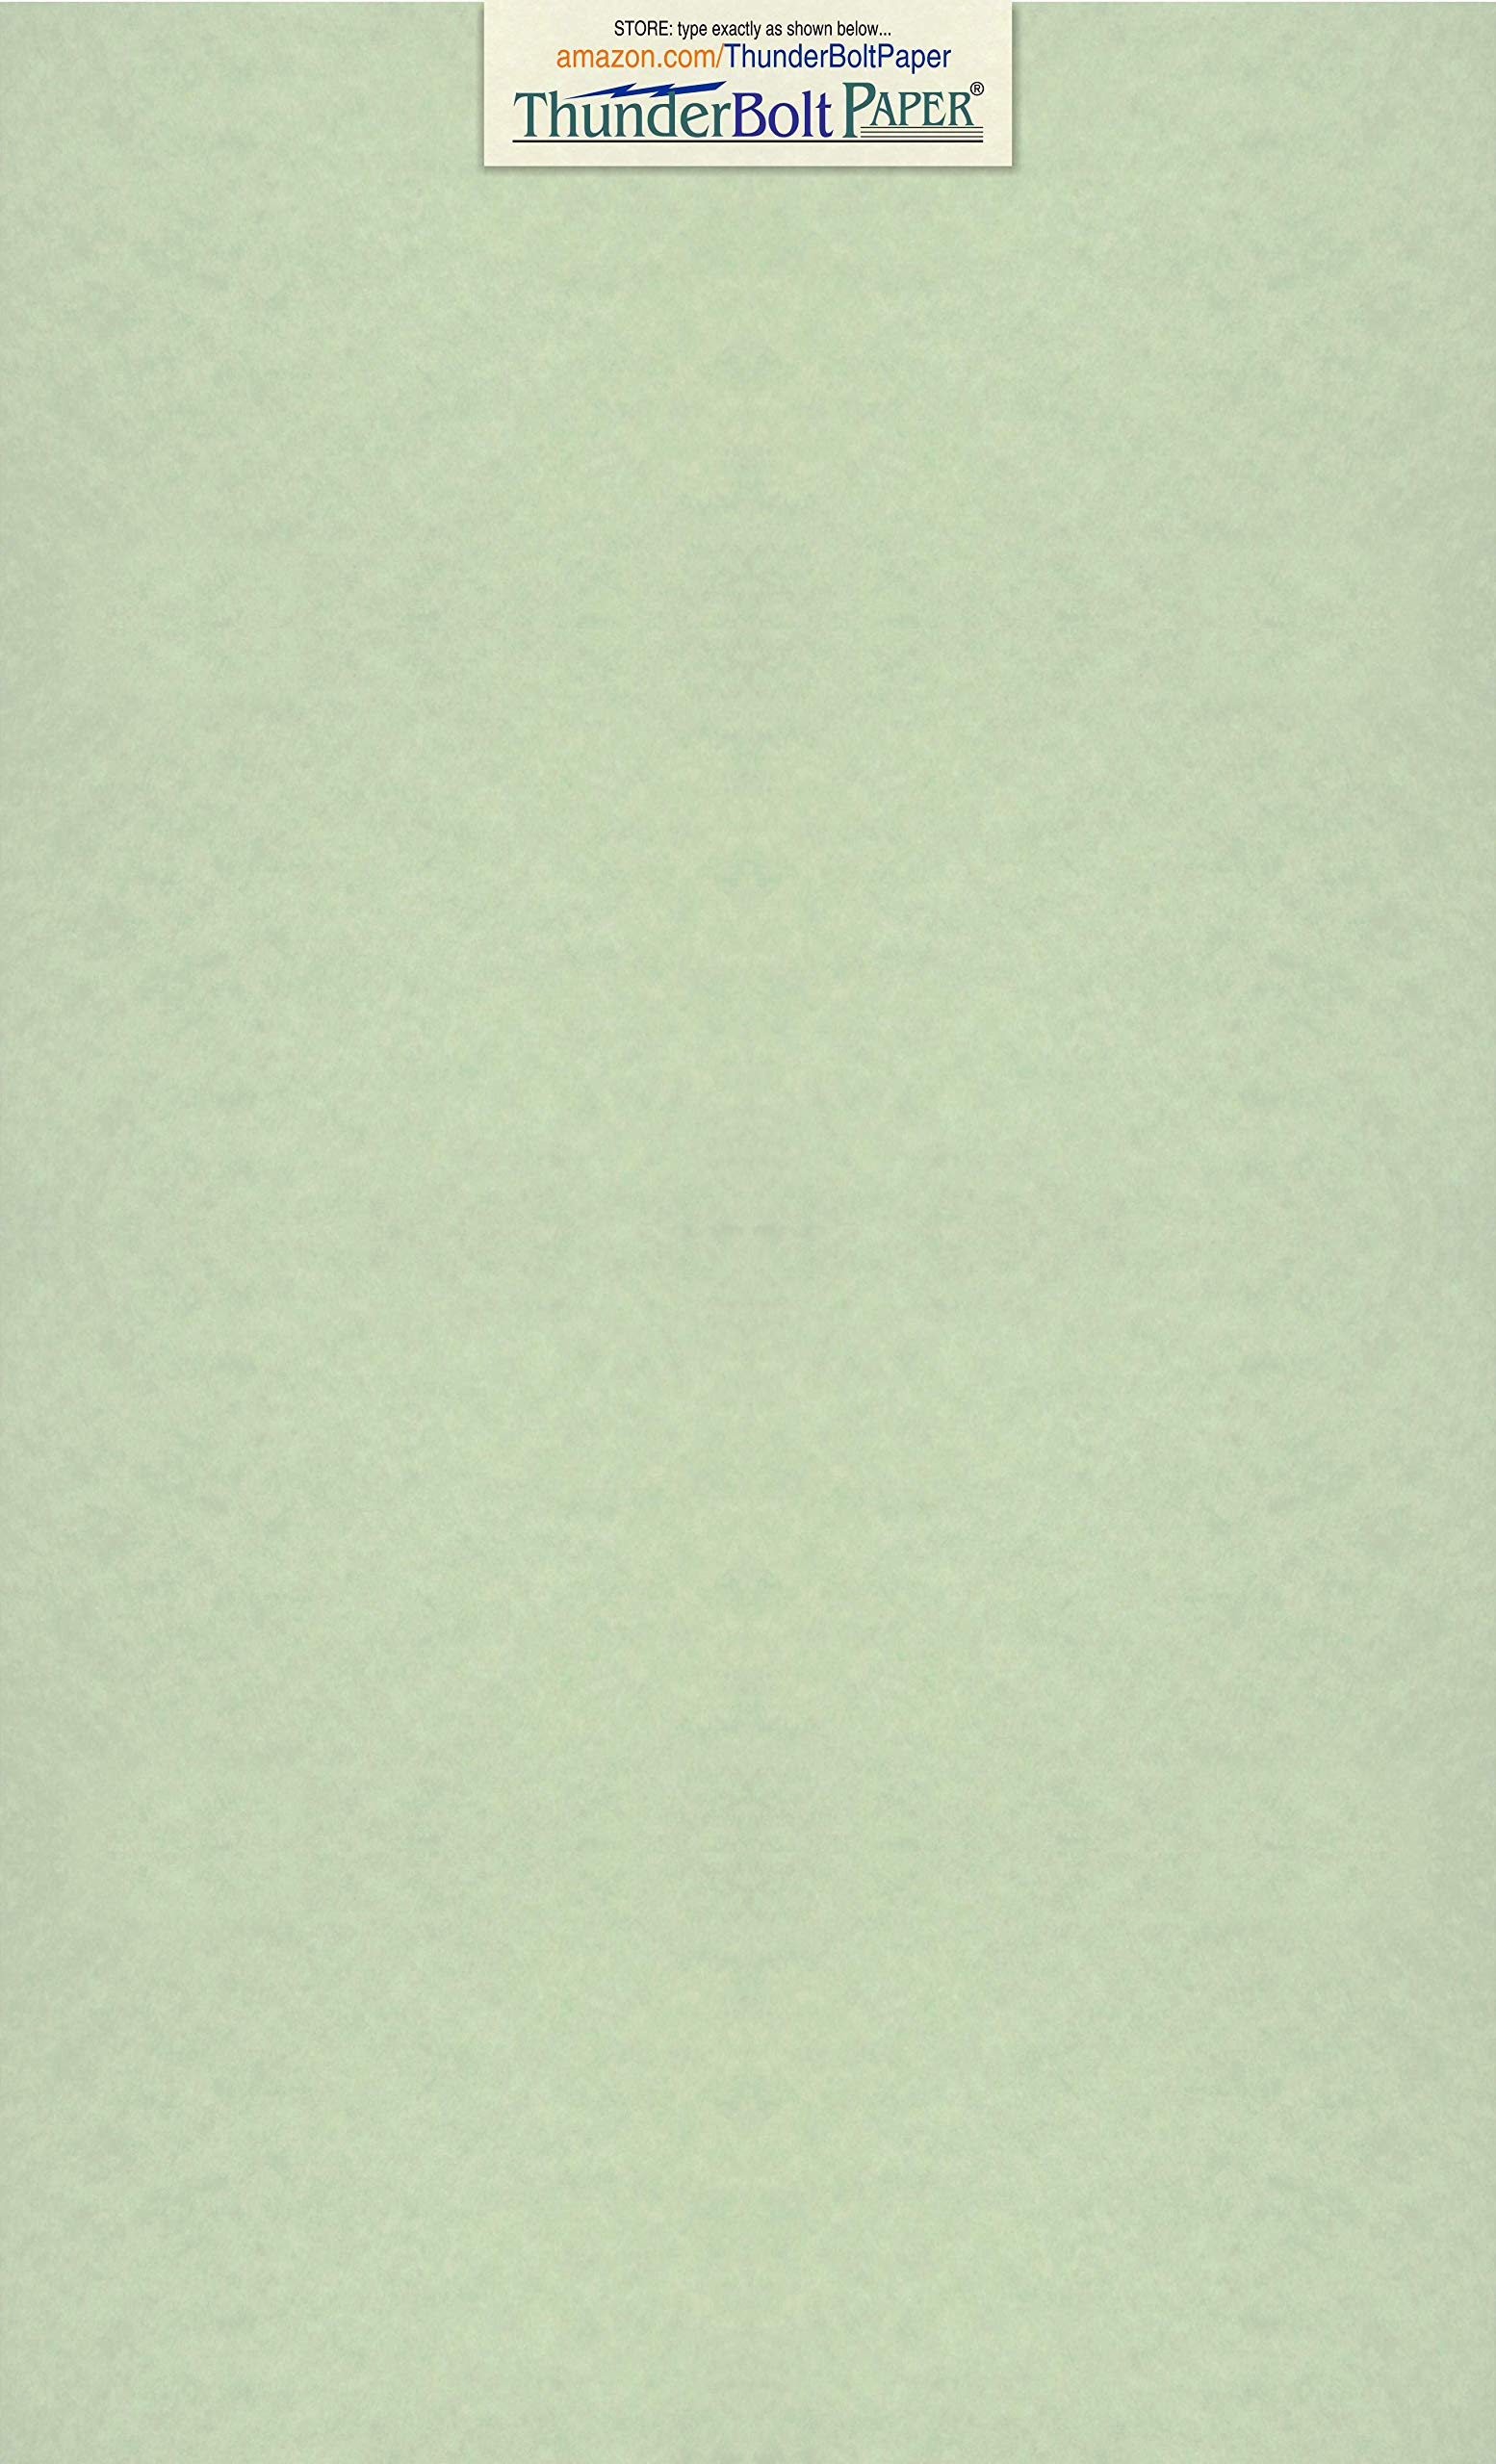 100 Green Parchment 65lb Cover Weight Paper 8.5 X 14 inches Cardstock Colored Sheets Legal Size -Printable Old Parchment Semblance by ThunderBolt Paper